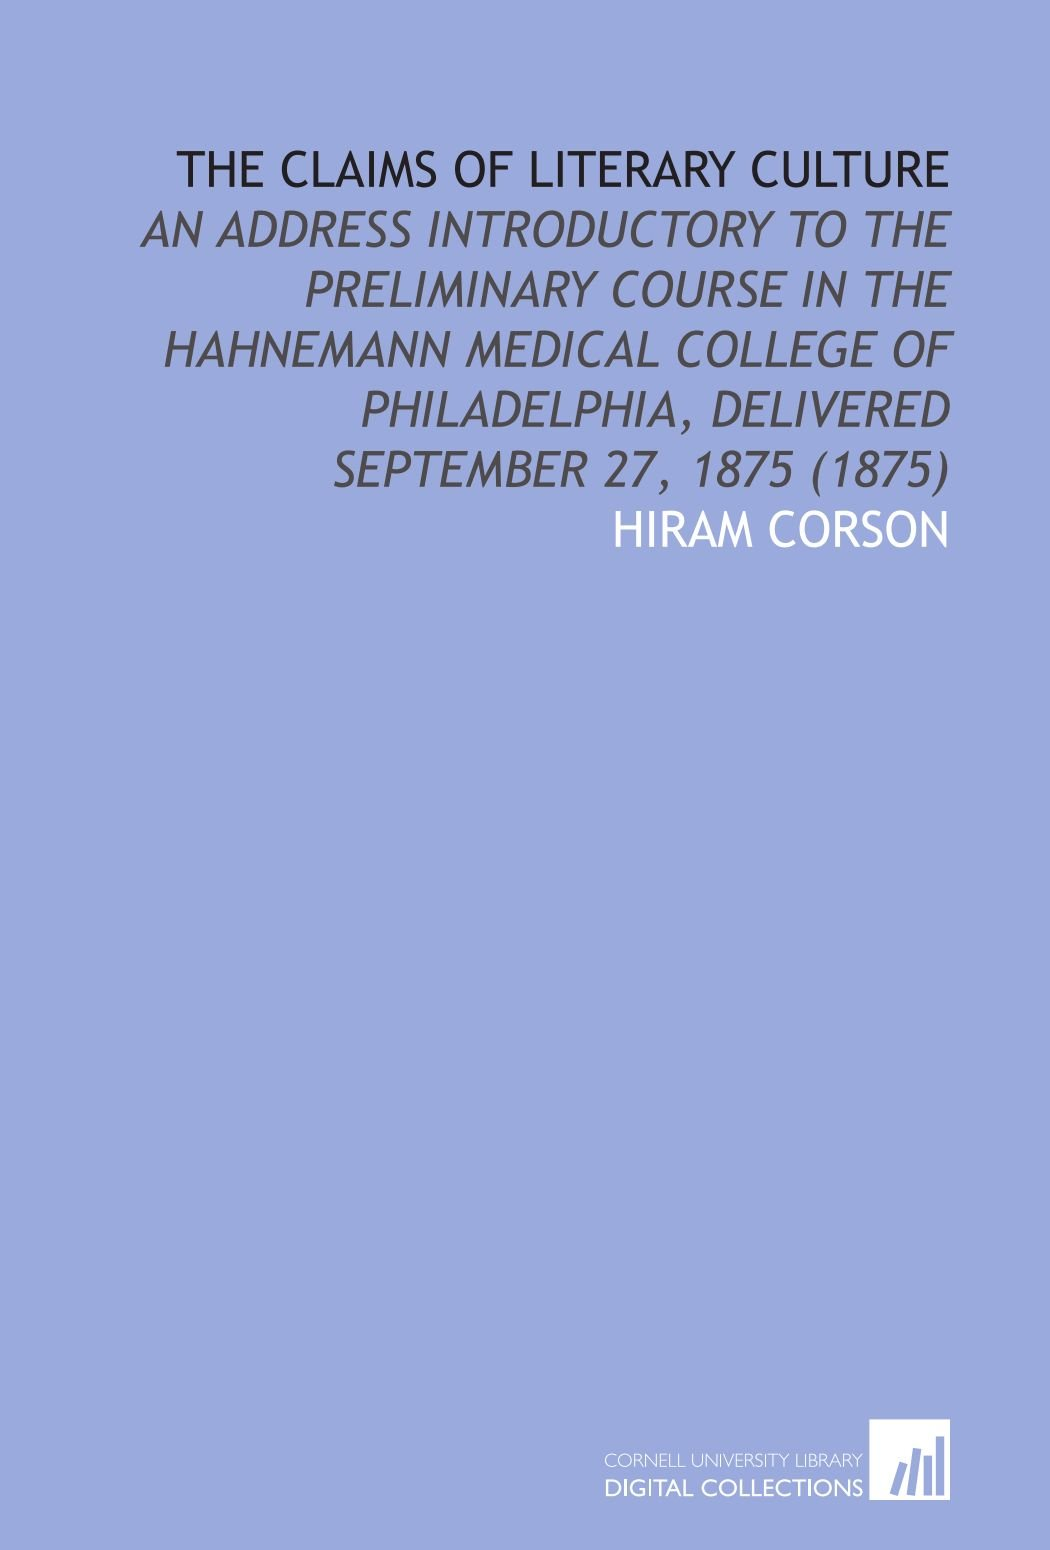 Download The Claims of Literary Culture: An Address Introductory to the Preliminary Course in the Hahnemann Medical College of Philadelphia, Delivered September 27, 1875 (1875) ebook